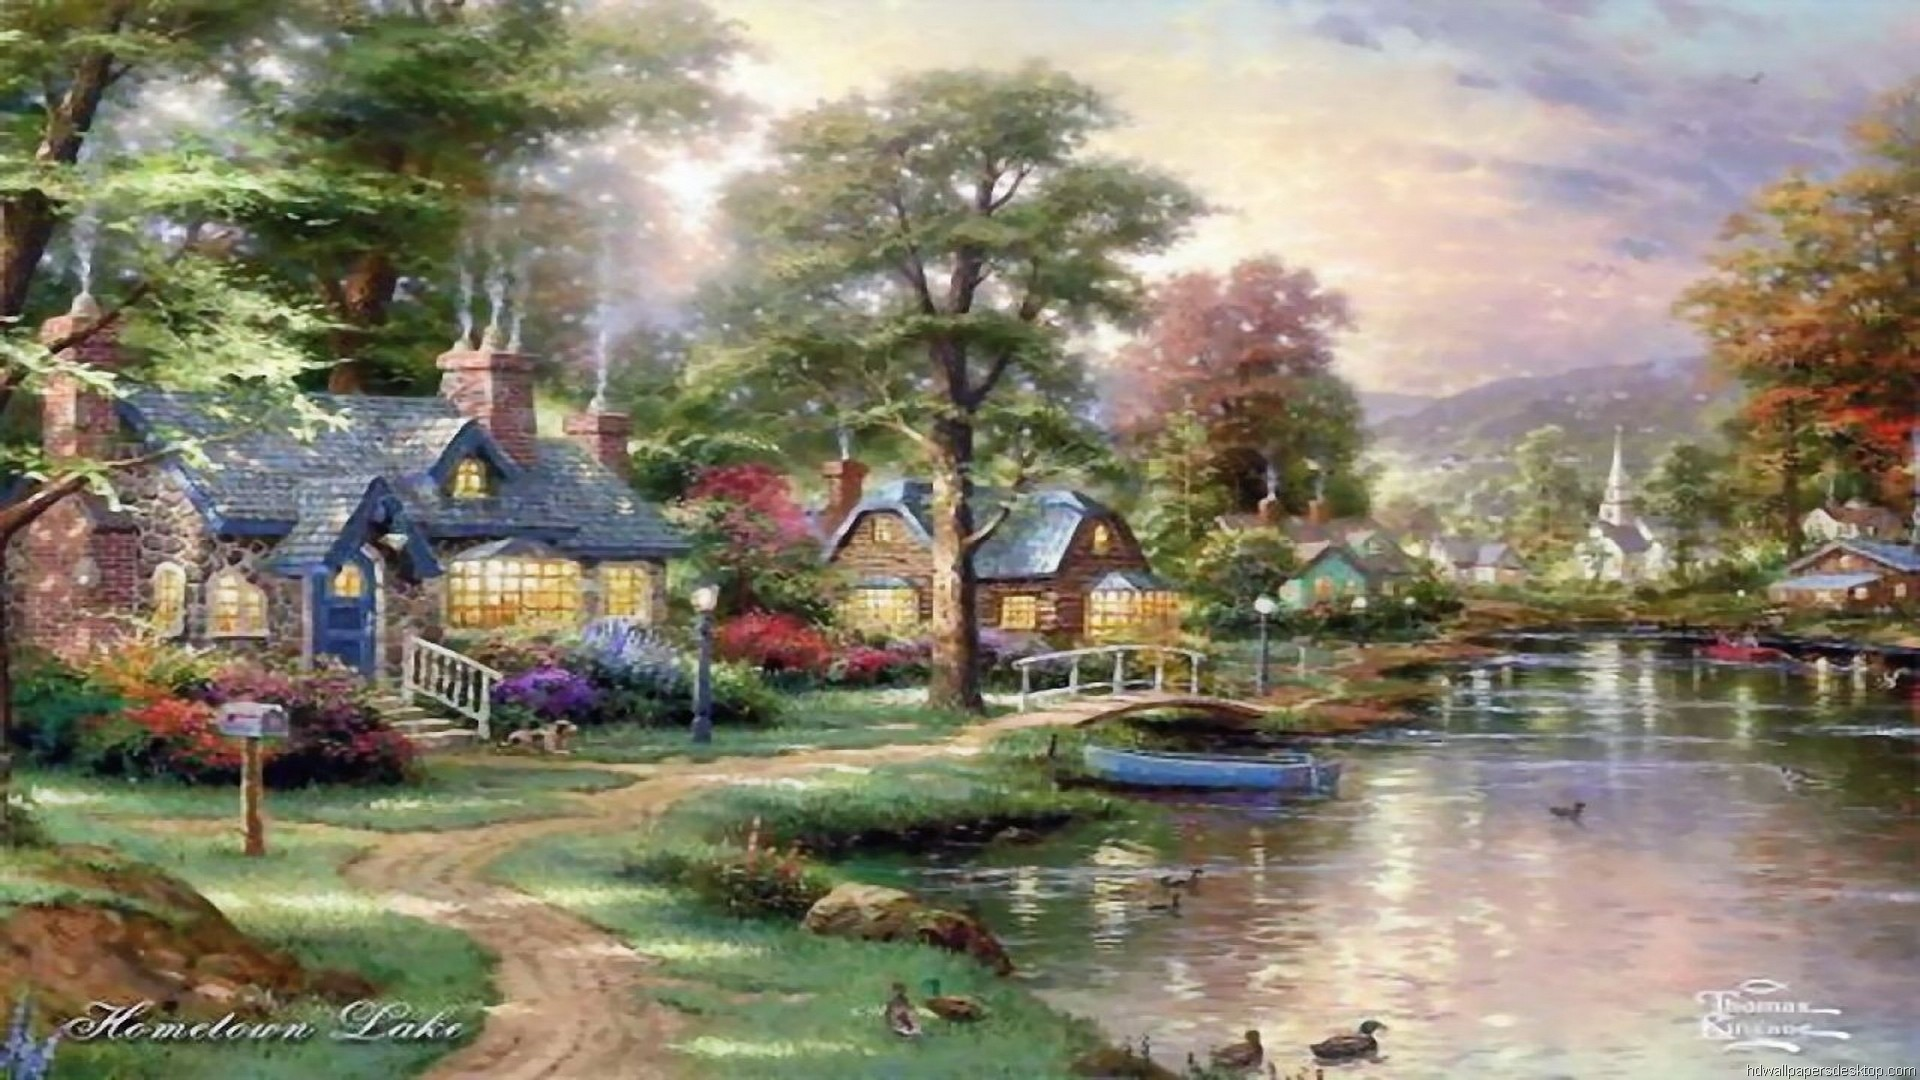 thomas kinkade wallpaper 1920x1080 - photo #14